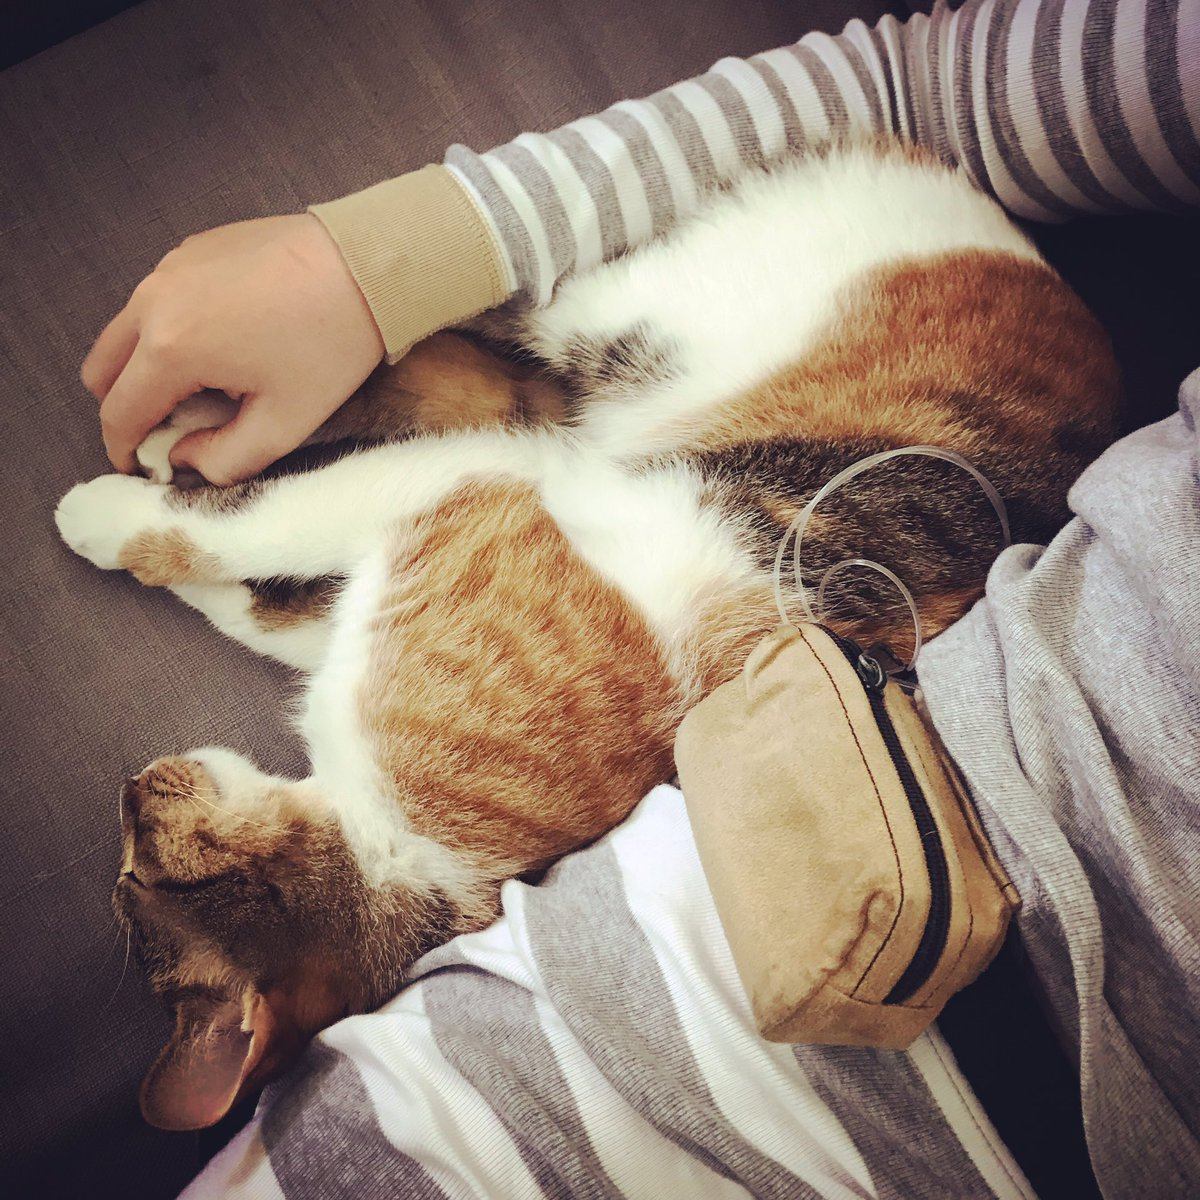 test Twitter Media - Day 2 of flu and the cat continues to care for her Type1 human. Anyone out there with pets who give you extra love when you are feeling under the weather? #type1diabetes #sickdays #lagata #thingscatsdo #type1 #insulinpump #pumpinginsulin https://t.co/g9a0NmrXJI